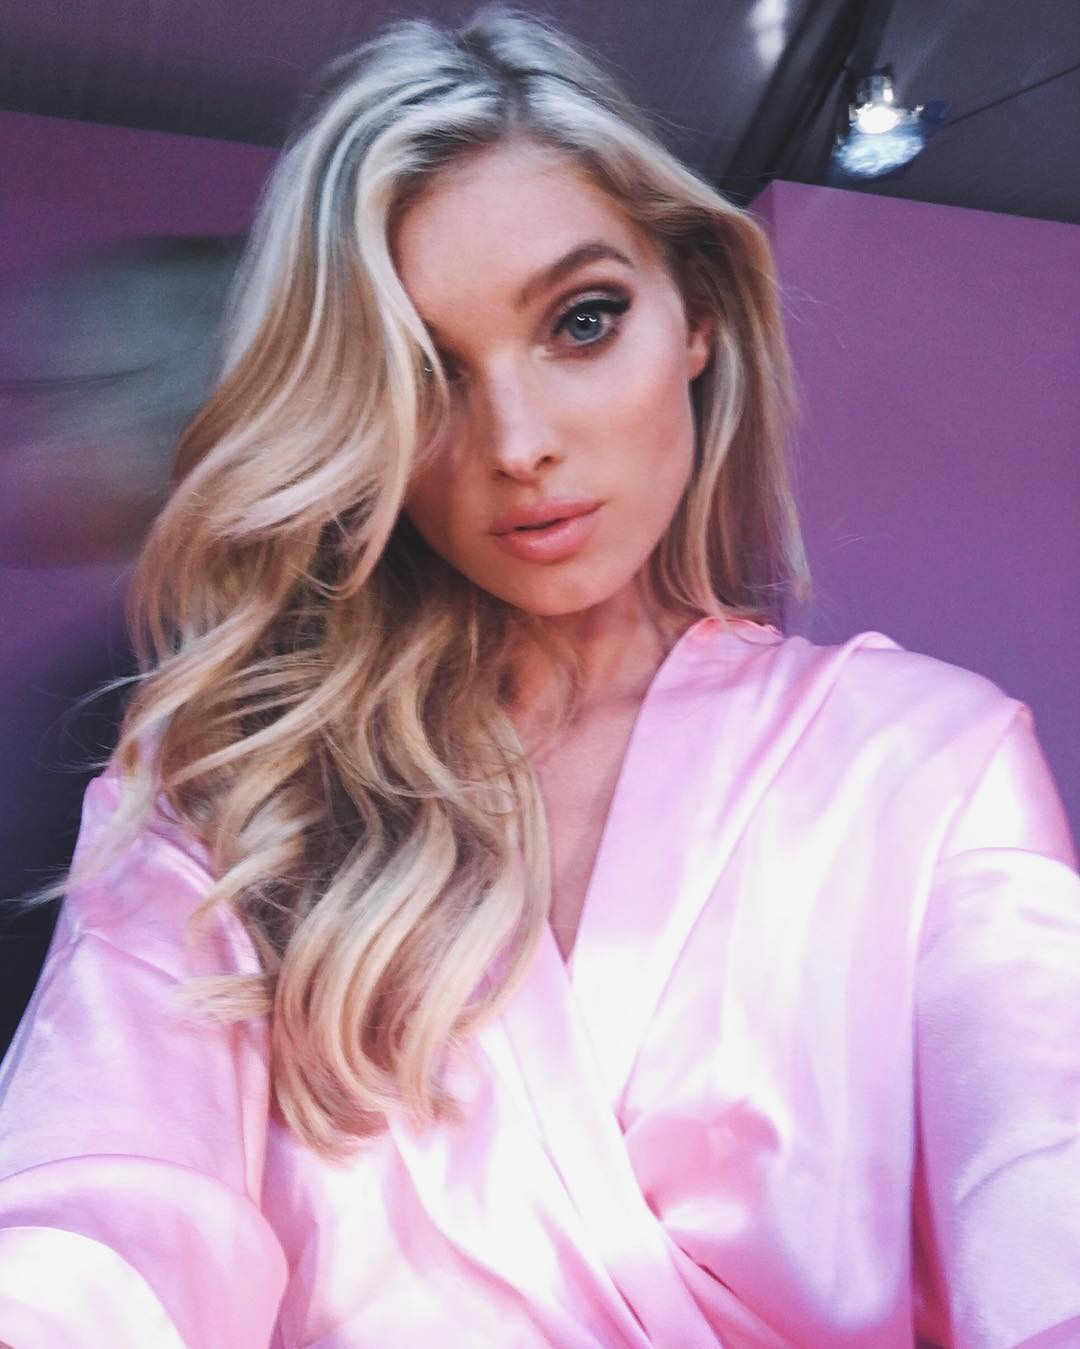 Selfie Elsa Hosk Selfiey naked (18 foto and video), Sexy, Paparazzi, Boobs, see through 2019